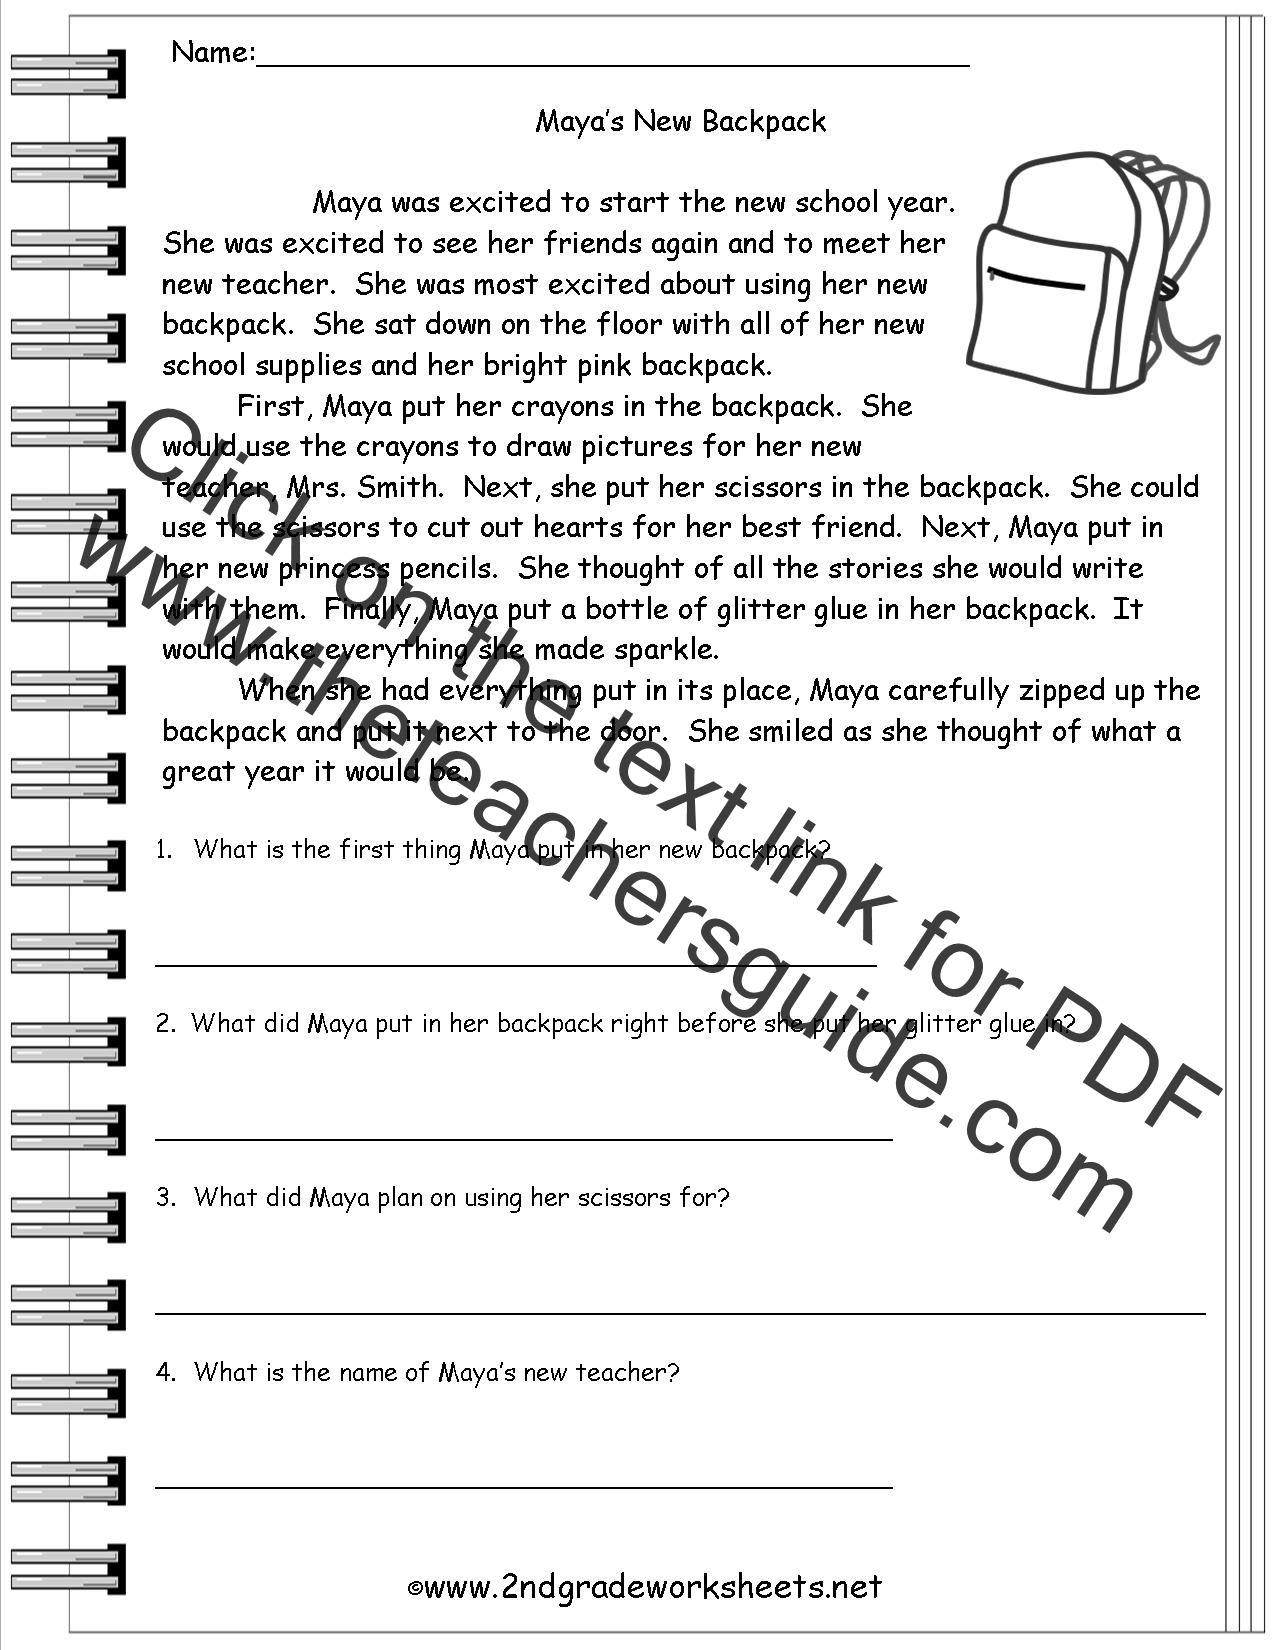 Worksheet Passages For Reading Comprehension reading worksheeets literature worksheets